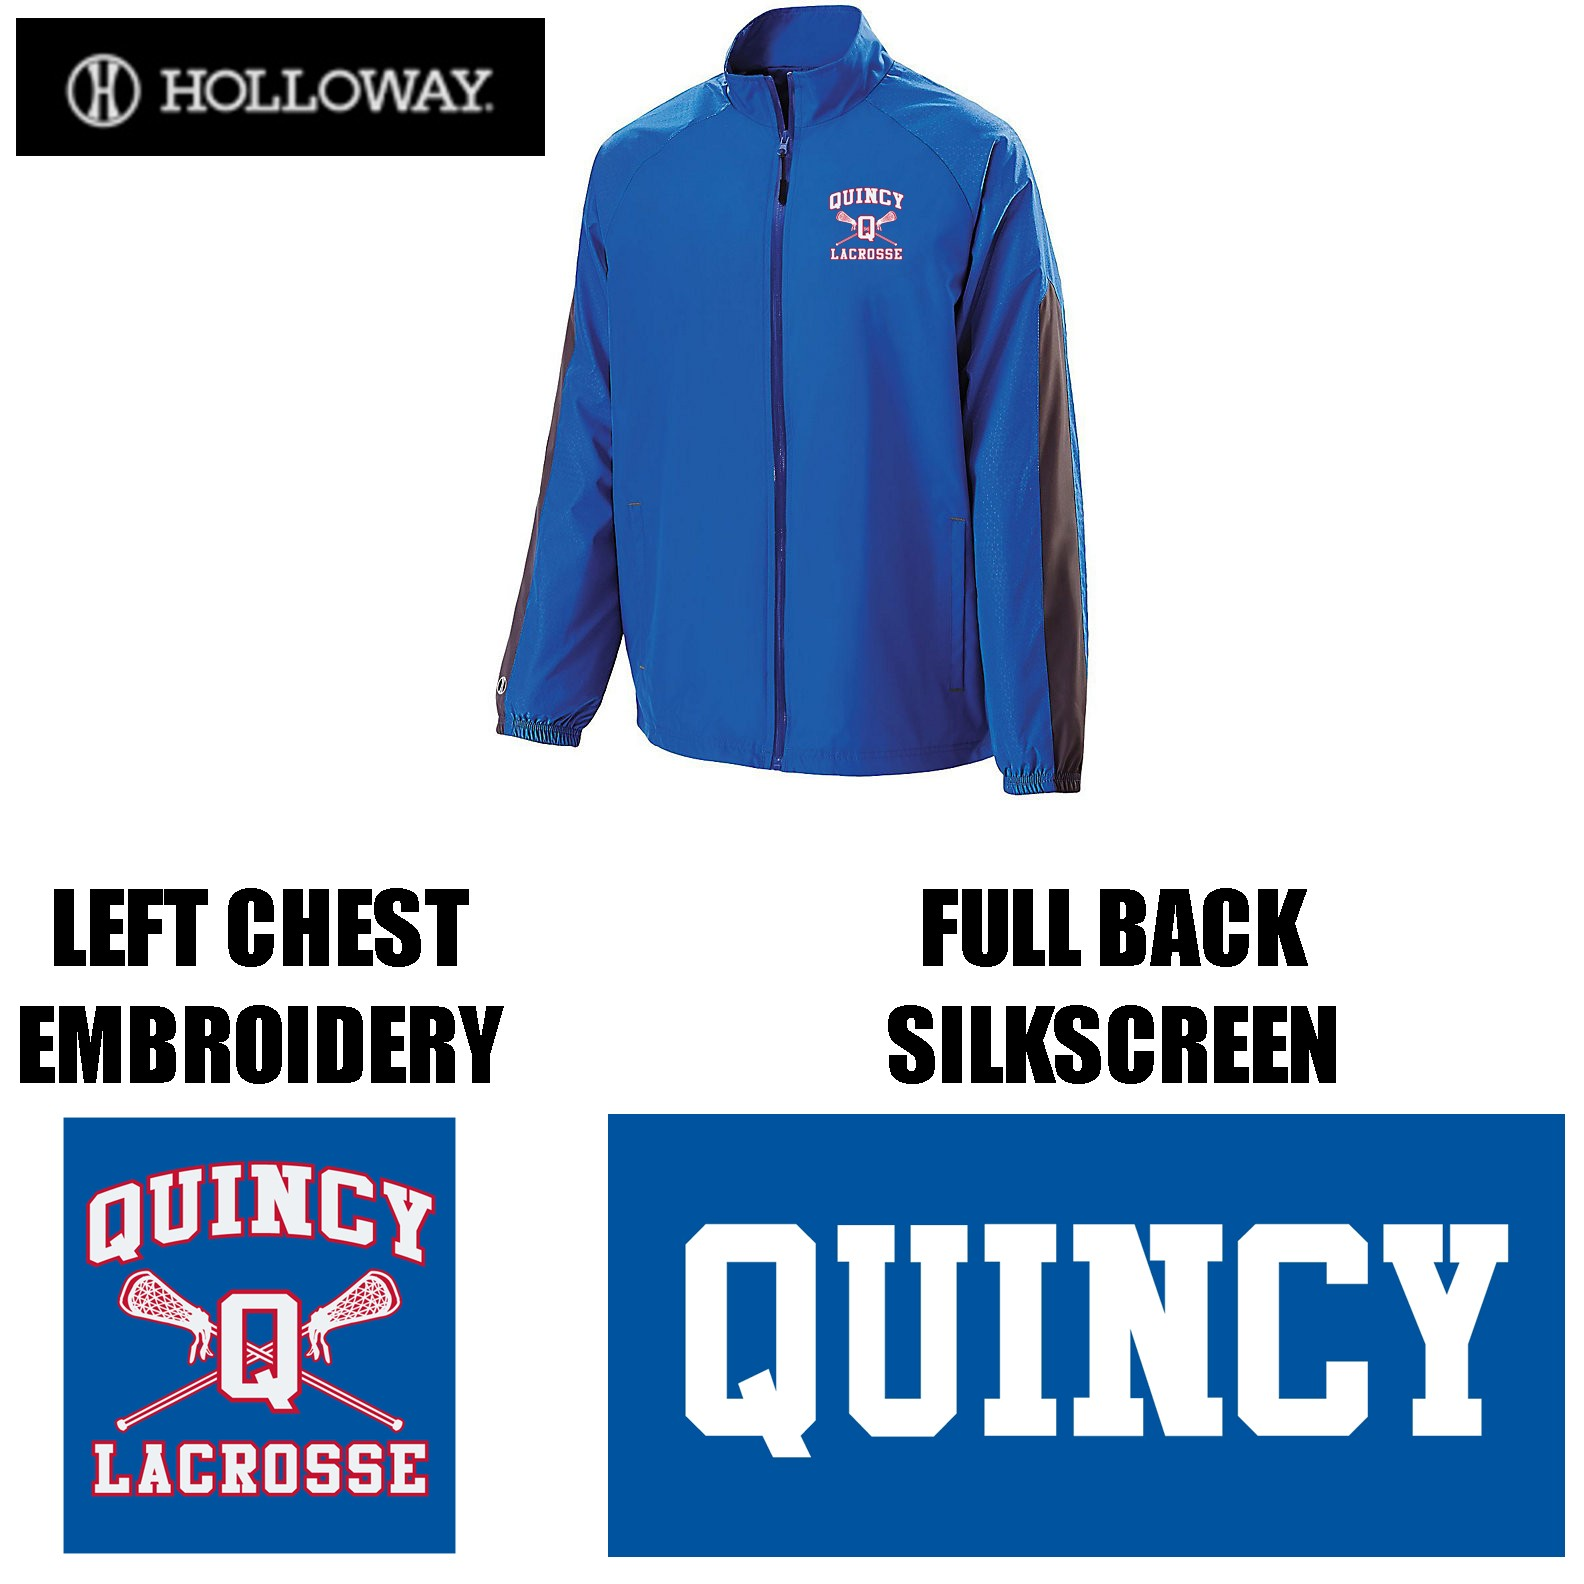 Quincy Lacrosse Holloway Brand Bionic Jacket, Youth Fit